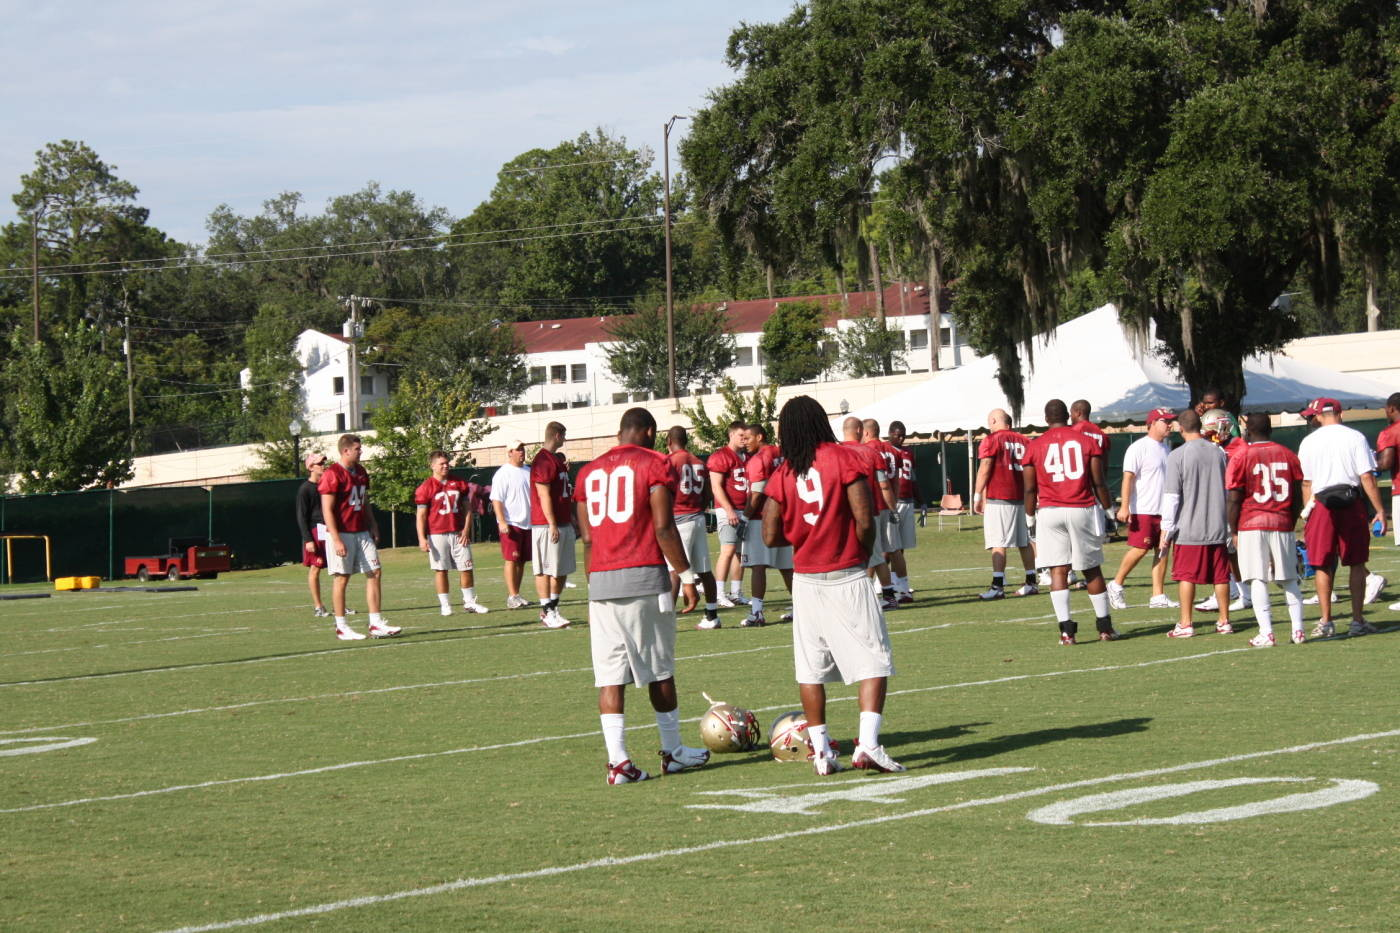 Football Practice #2: August 8th, 2009 (Courtesy of Seminoles.com)